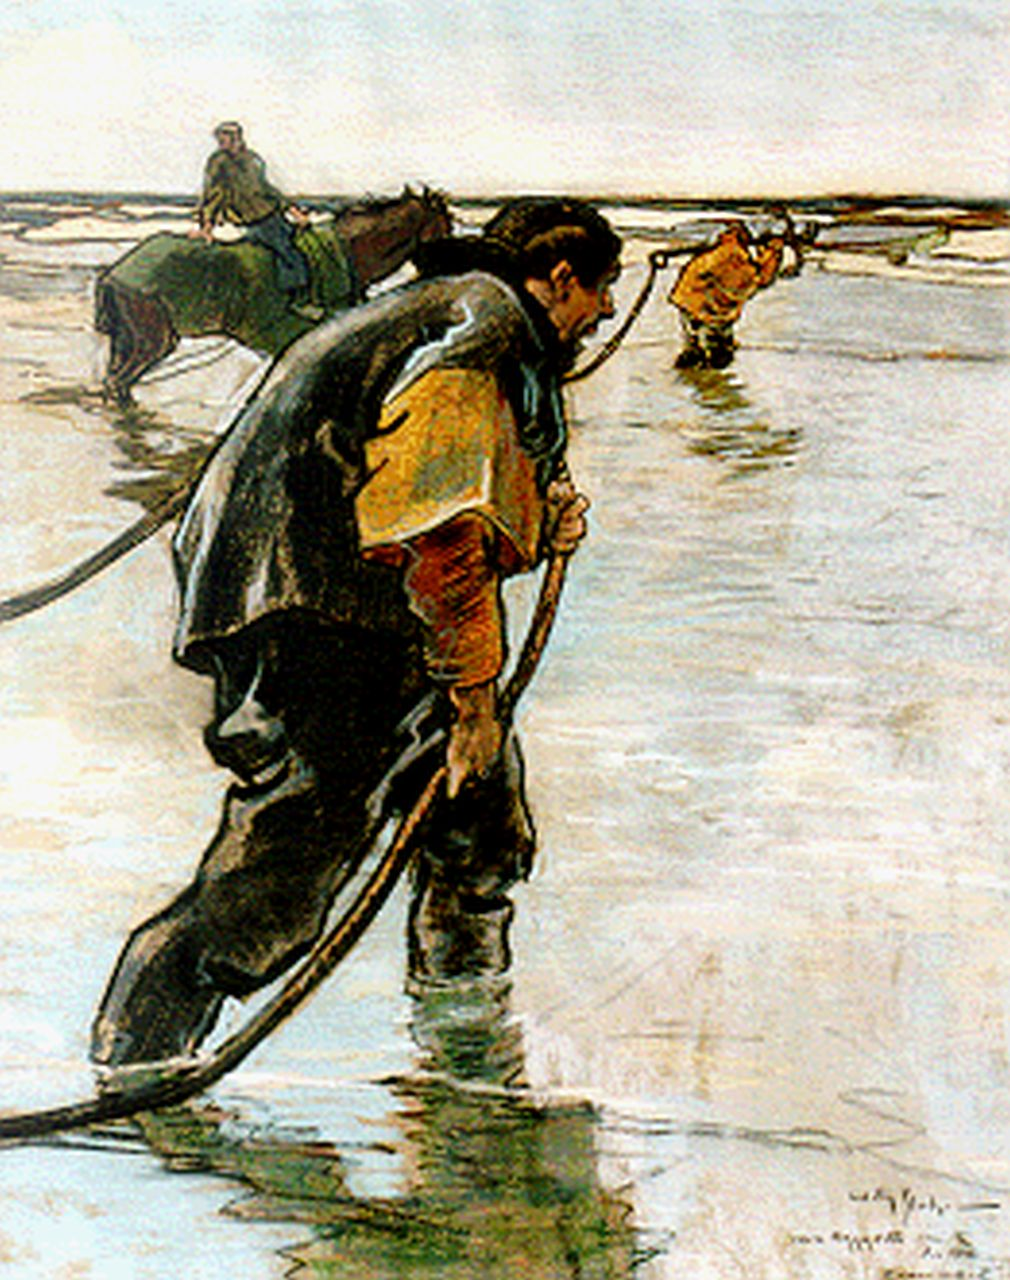 Sluiter J.W.  | Jan Willem 'Willy' Sluiter, Fishermen at work, pastel on paper 48.0 x 38.5 cm, signed l.r. and dated January 1915